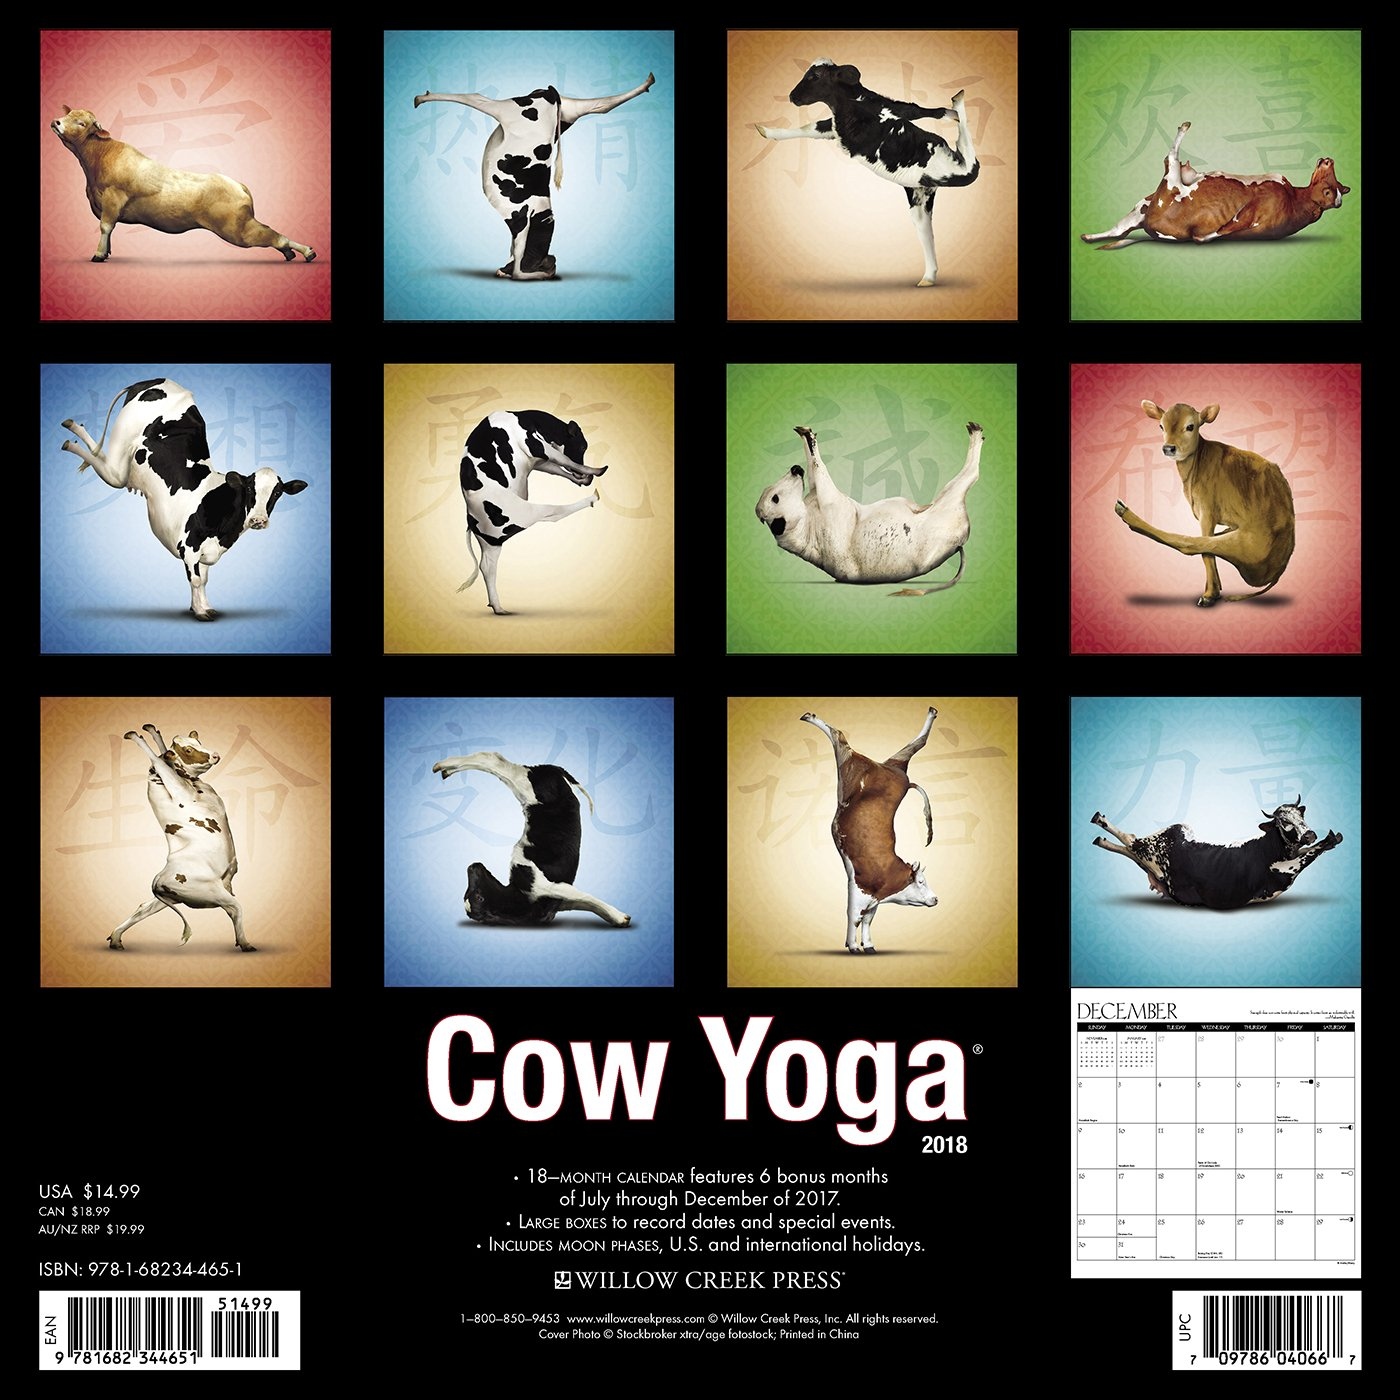 Cow Yoga 2018 Calendar: Willow Creek Press: 0709786040667 ...